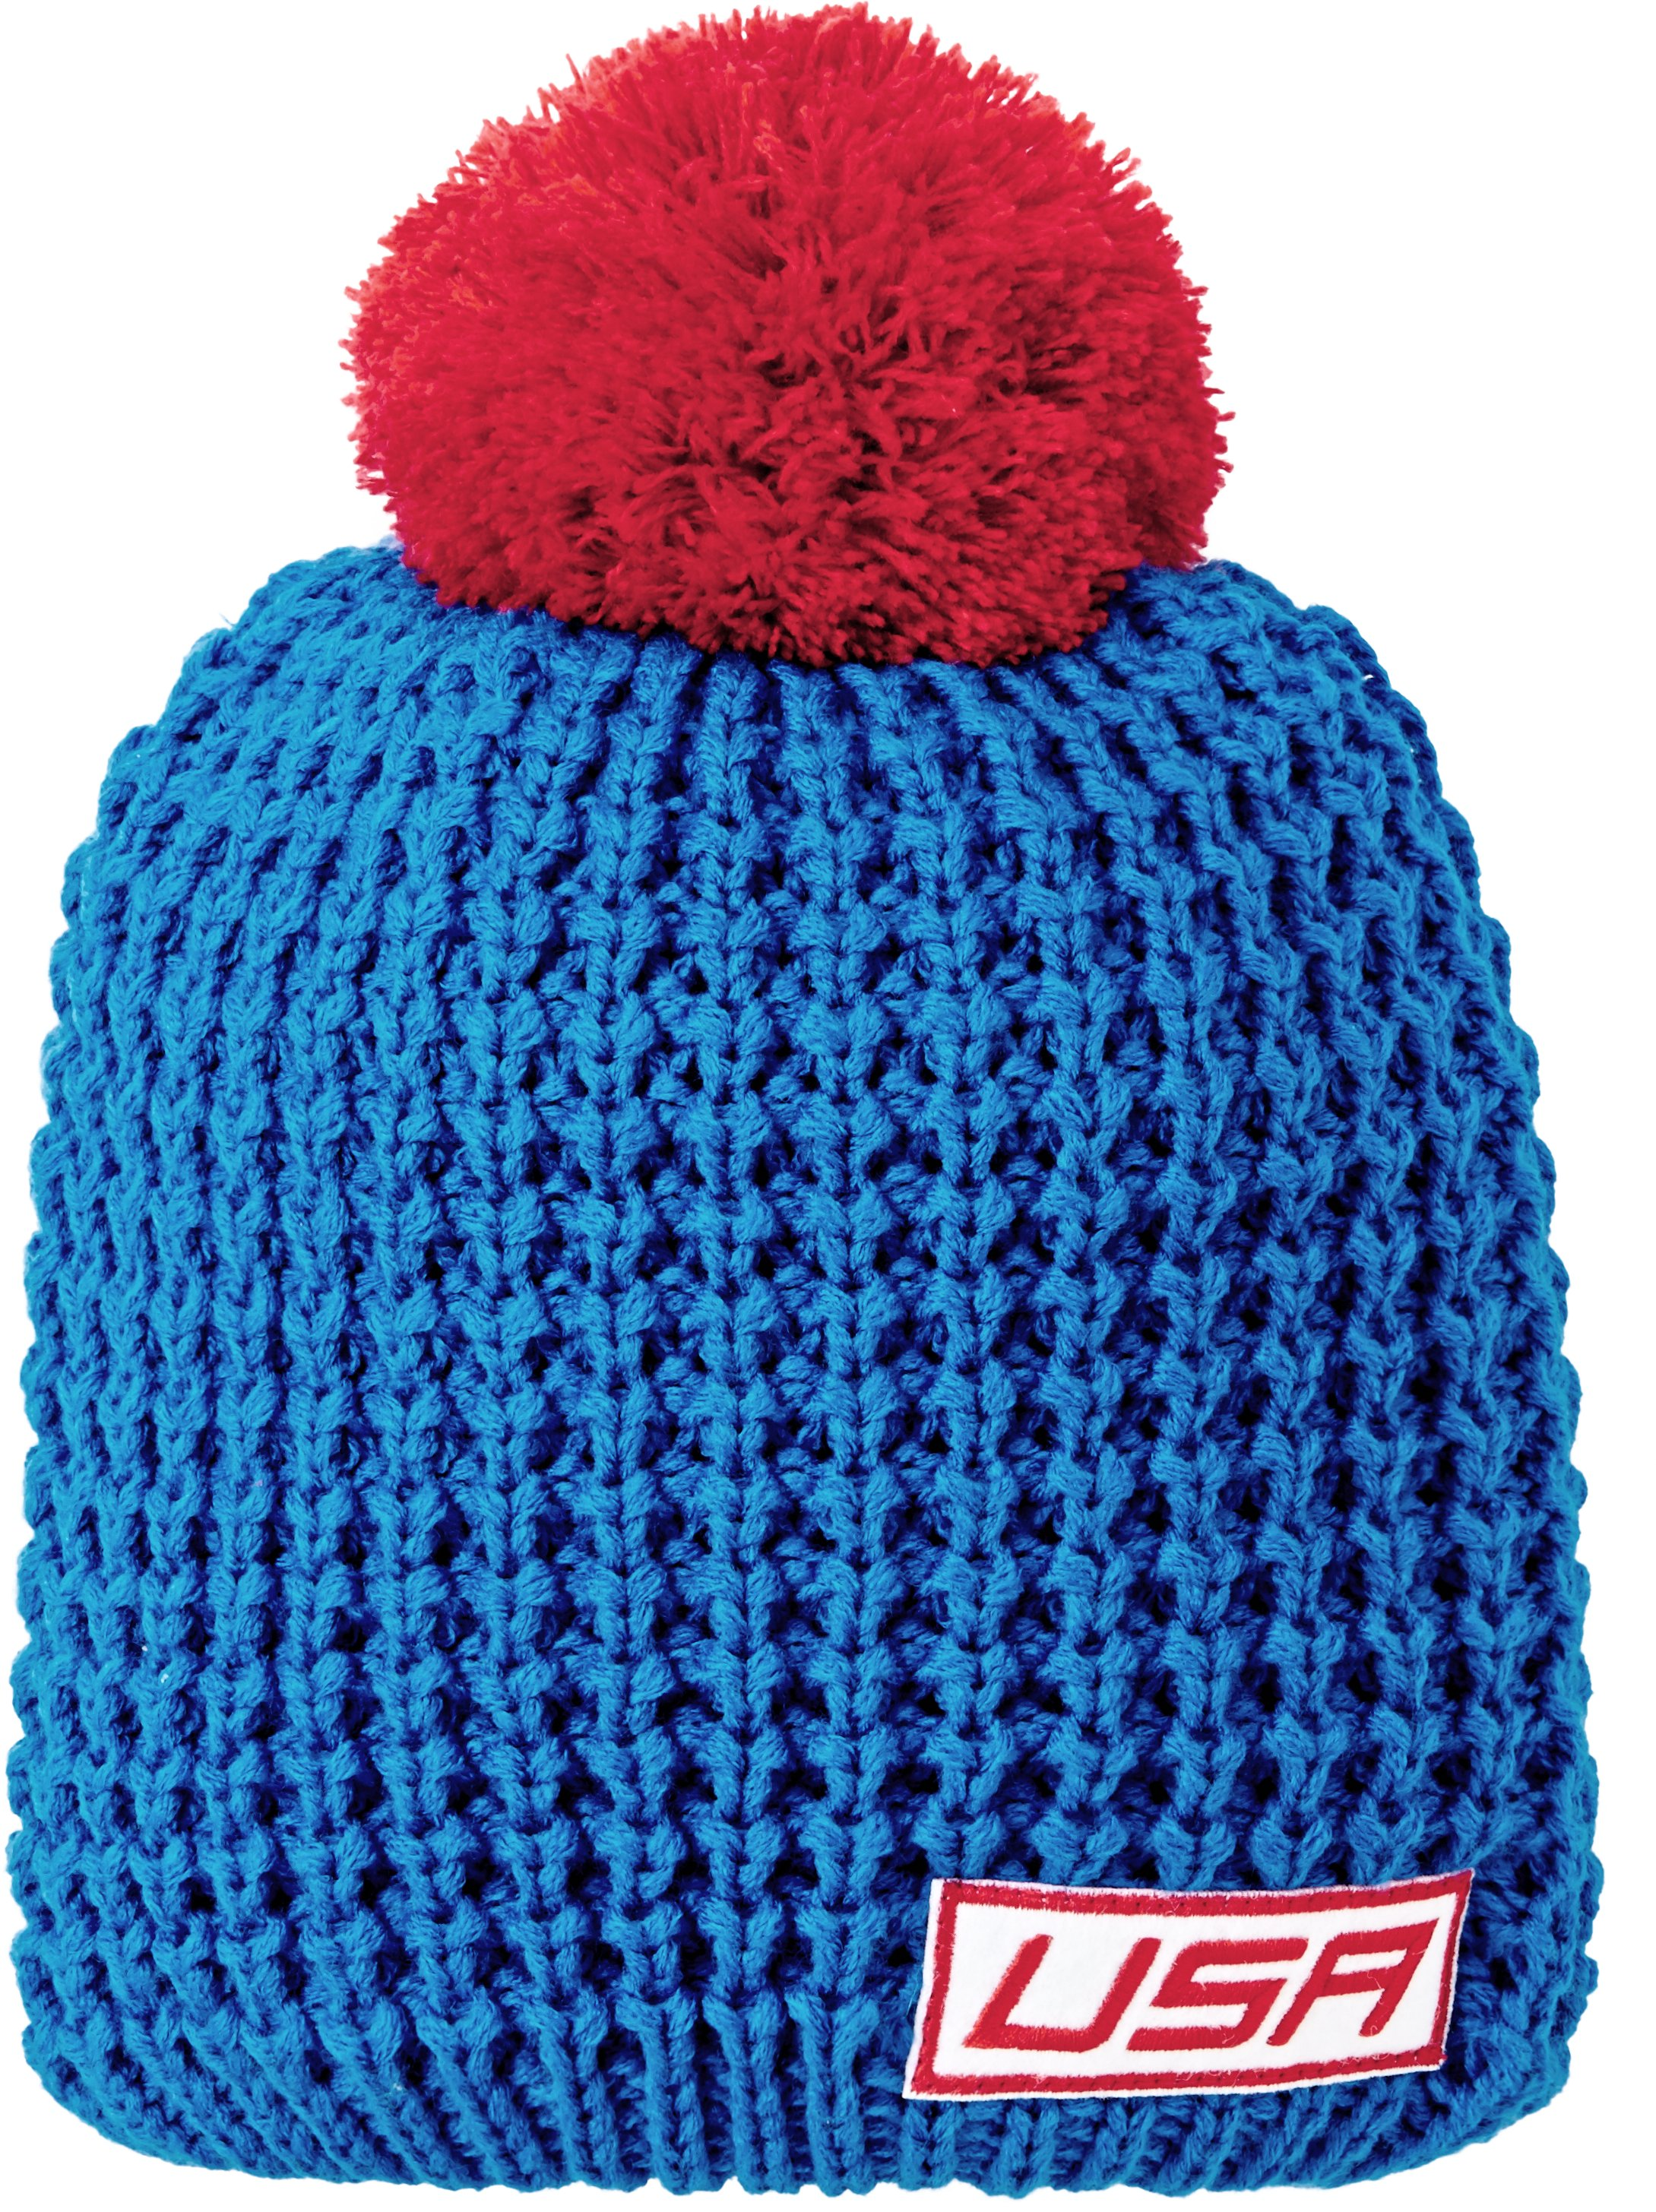 Women's USA Knit Beanie, SCATTER